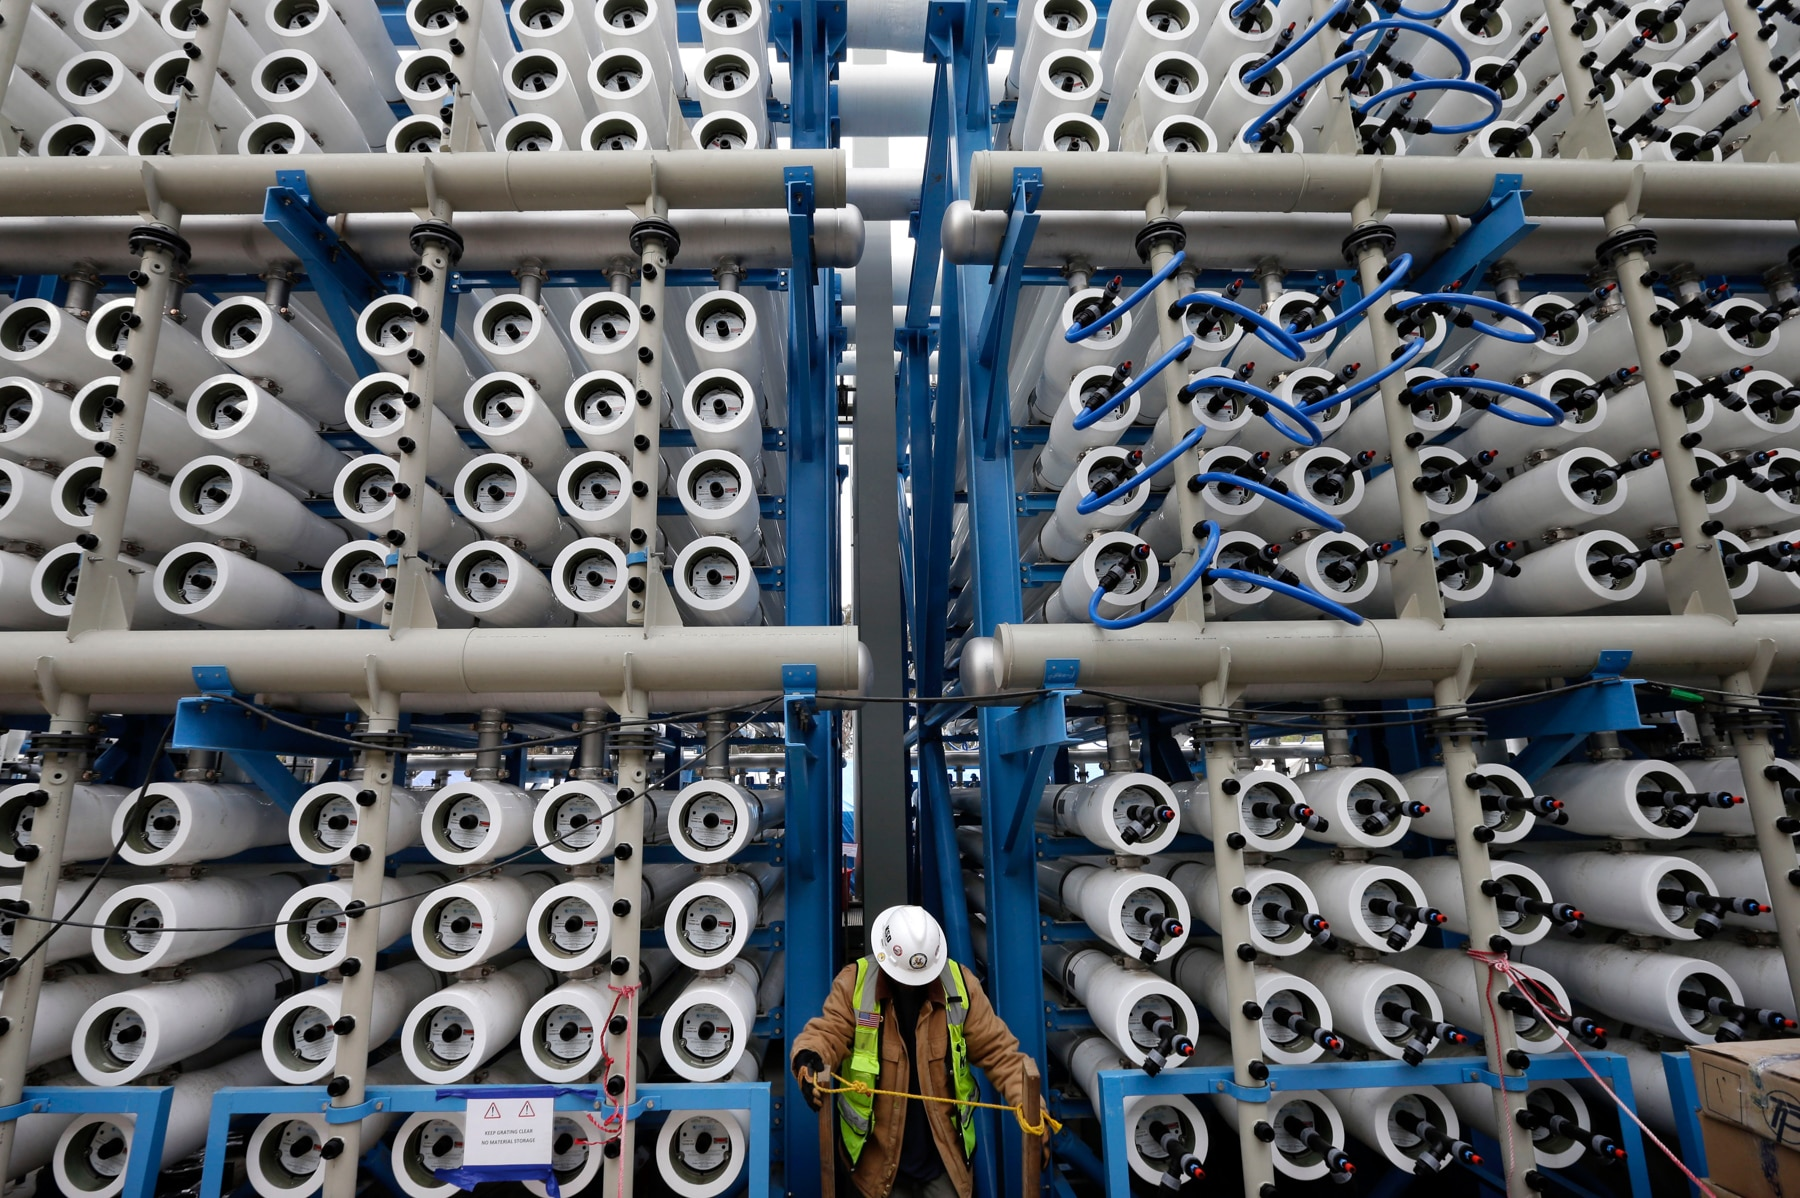 Israeli technology and California s need for water